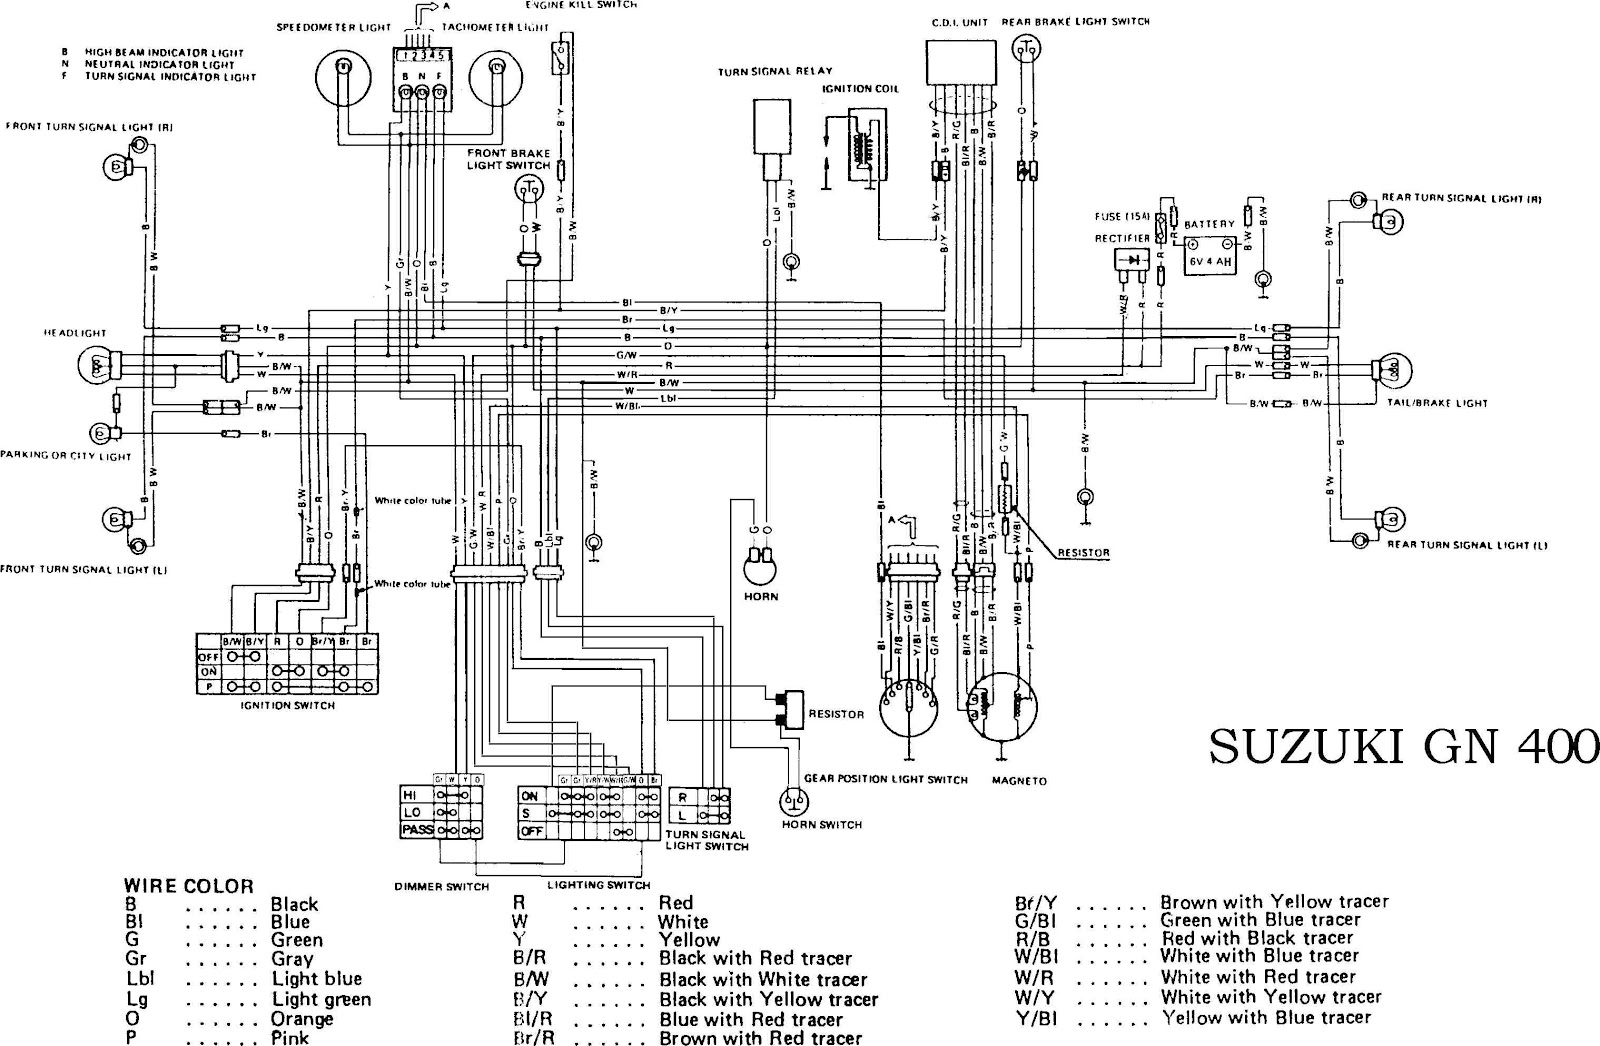 Suzuki GN400 motorcycle Complete Electrical Wiring Diagram | All about Wiring Diagrams